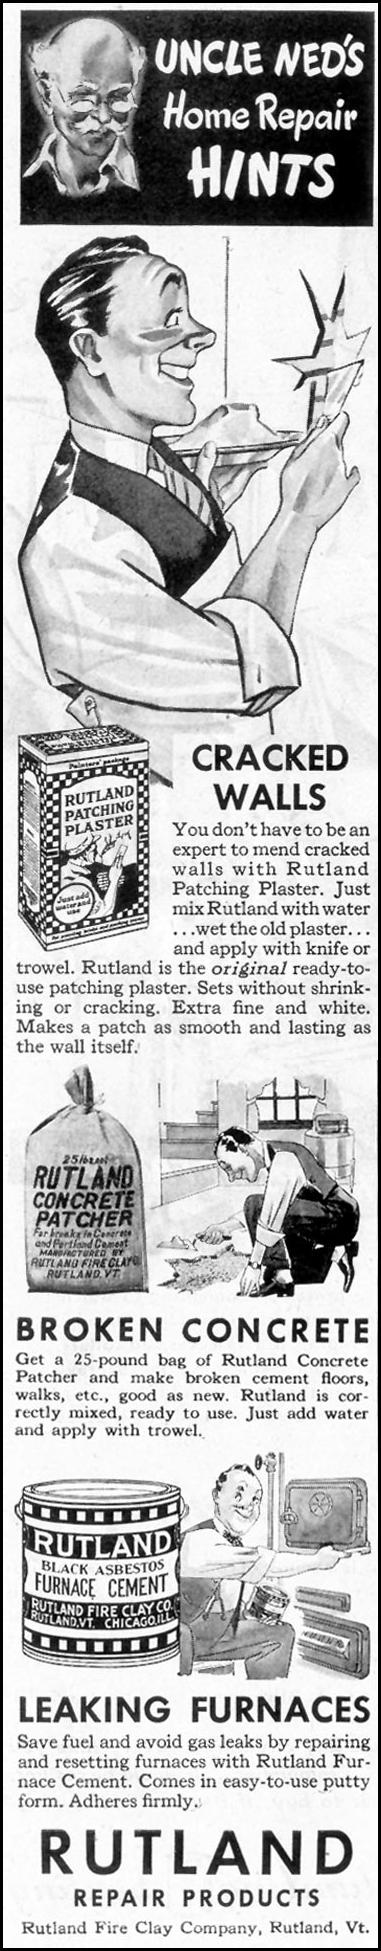 RUTLAND REPAIR PRODUCTS SATURDAY EVENING POST 05/19/1945 p. 70